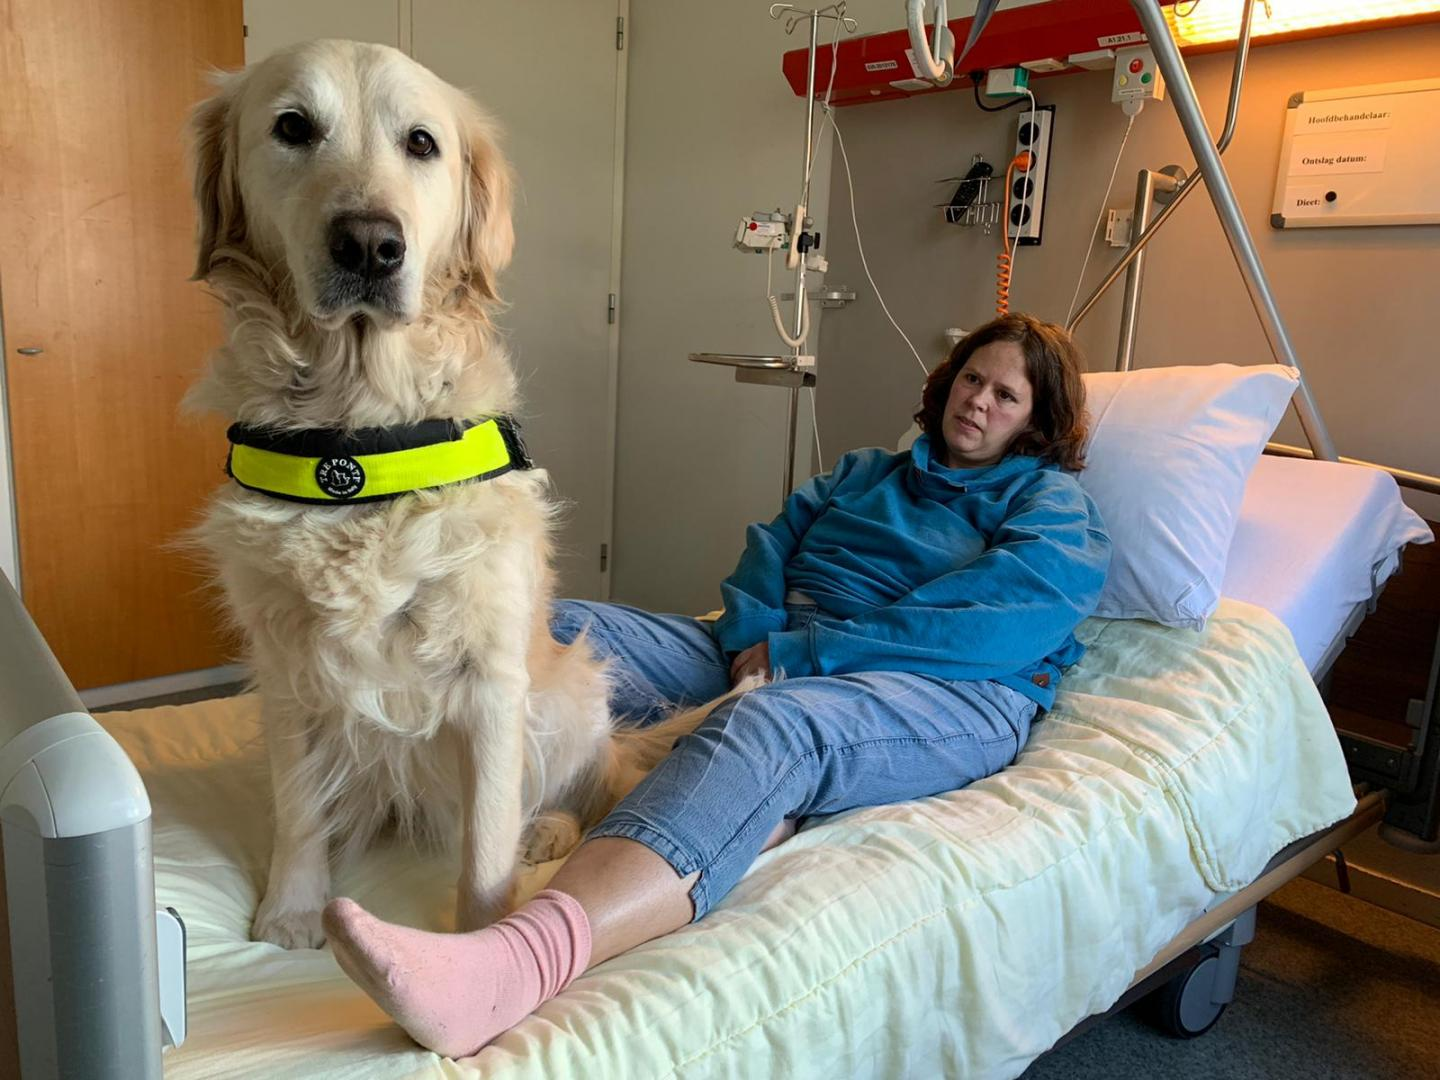 Assistance Dog User Iris and Her Dog Sandy in the Recovery Room After Surgery